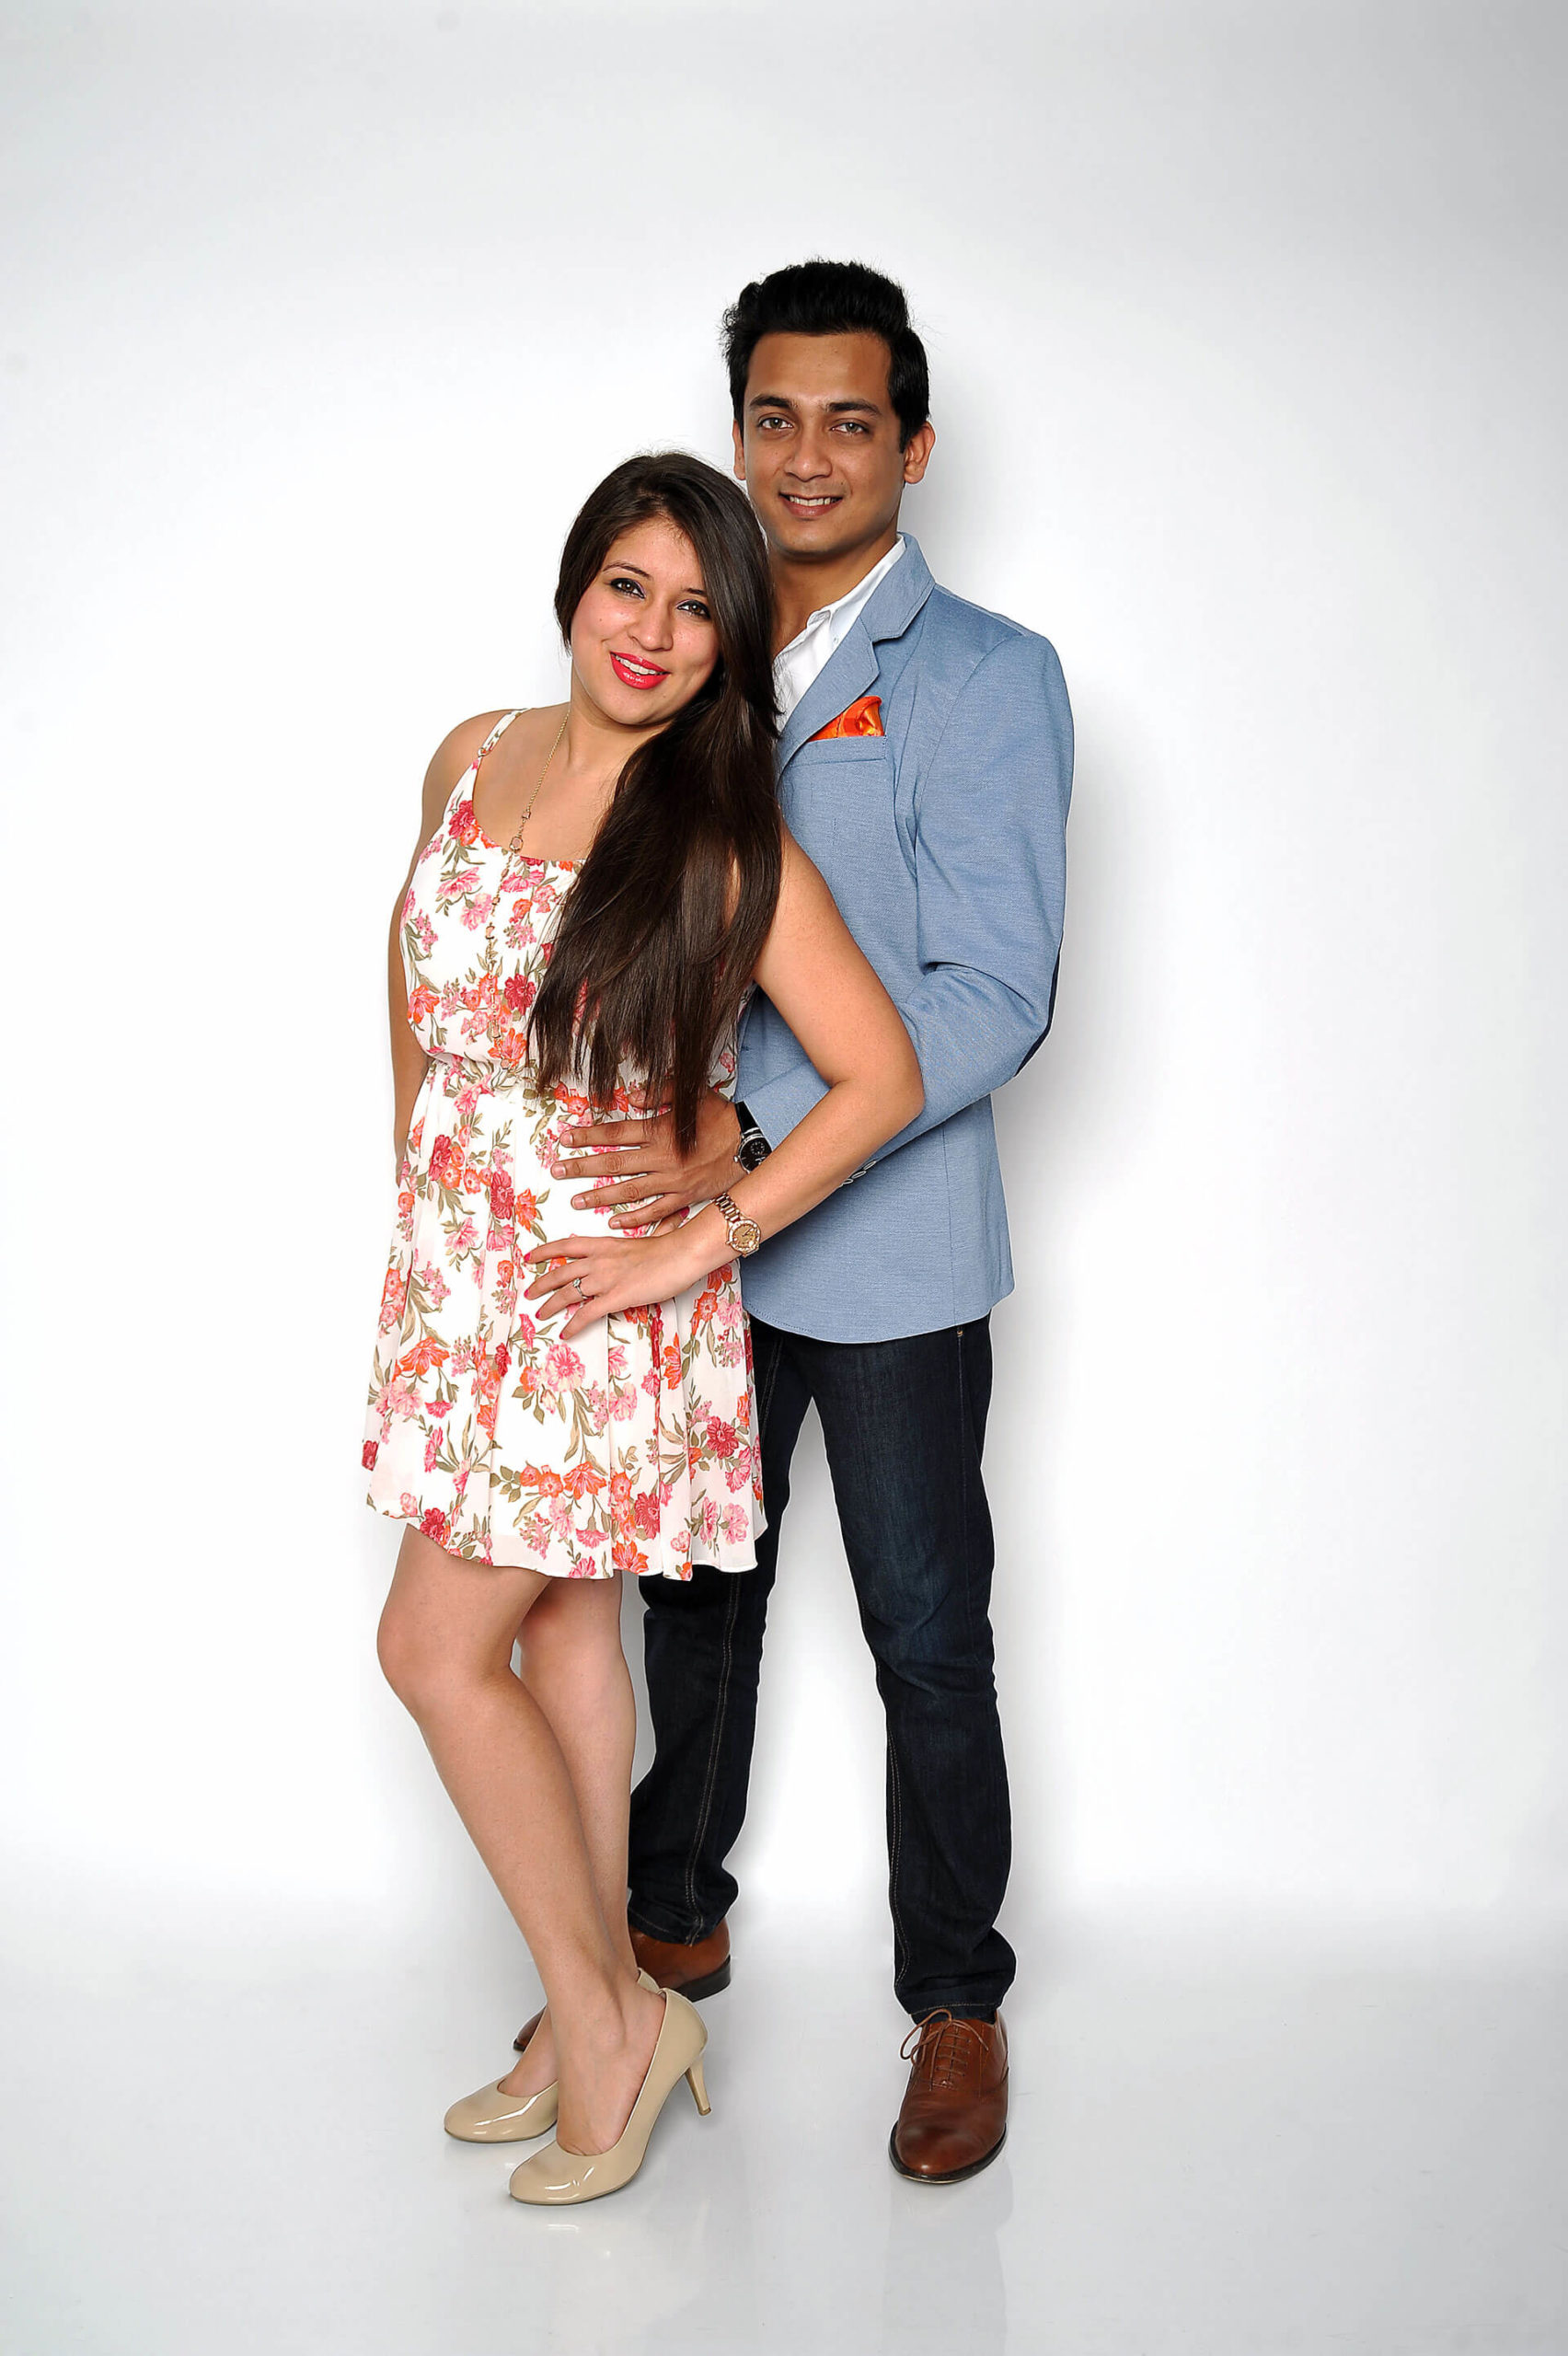 Couple shoot full body Photo